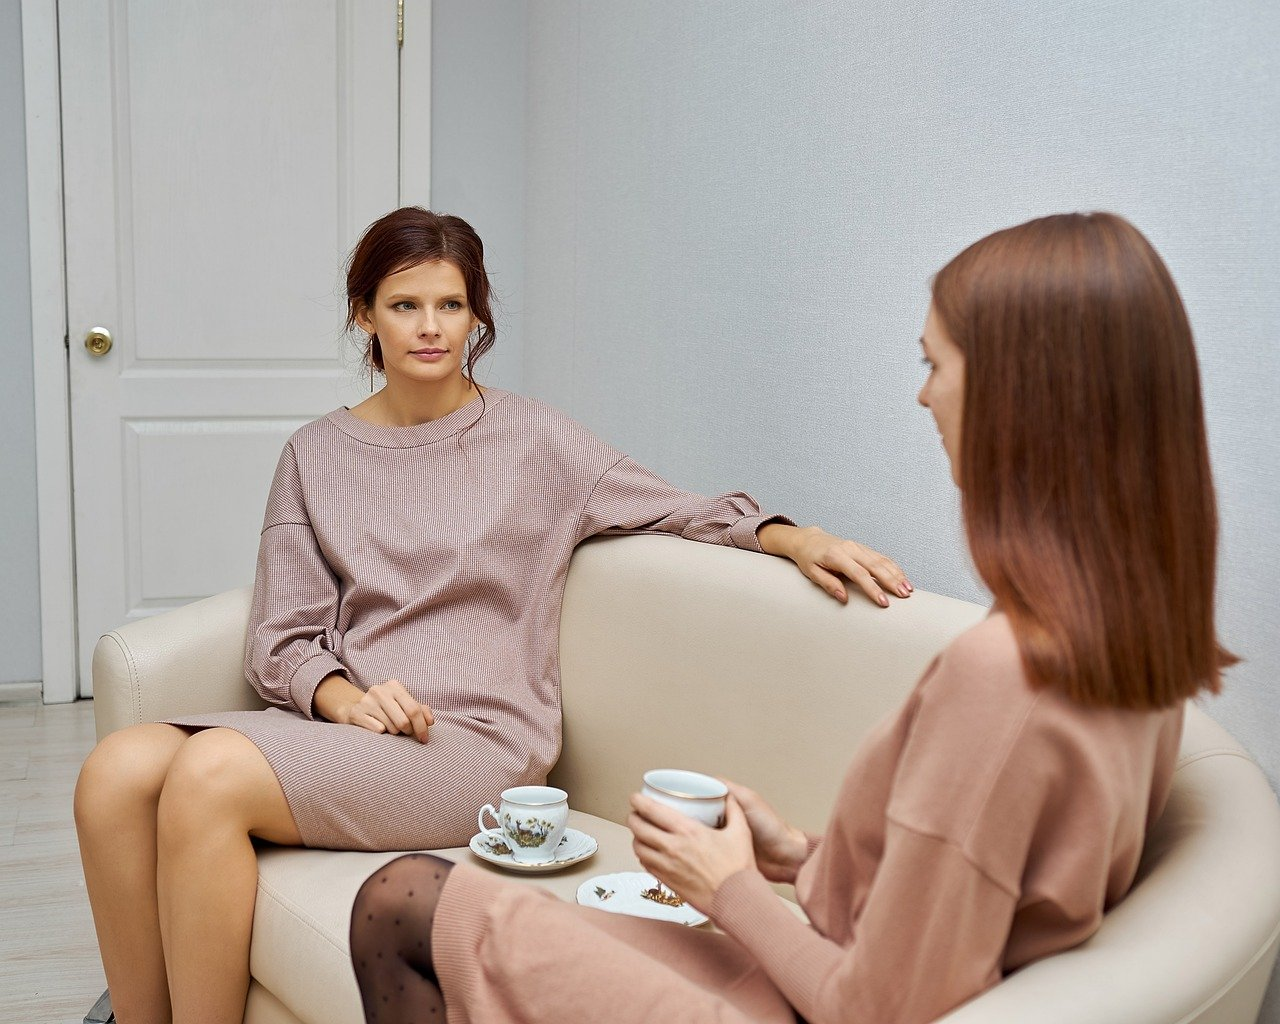 Two women sitting on a couch, drinking tea and talking